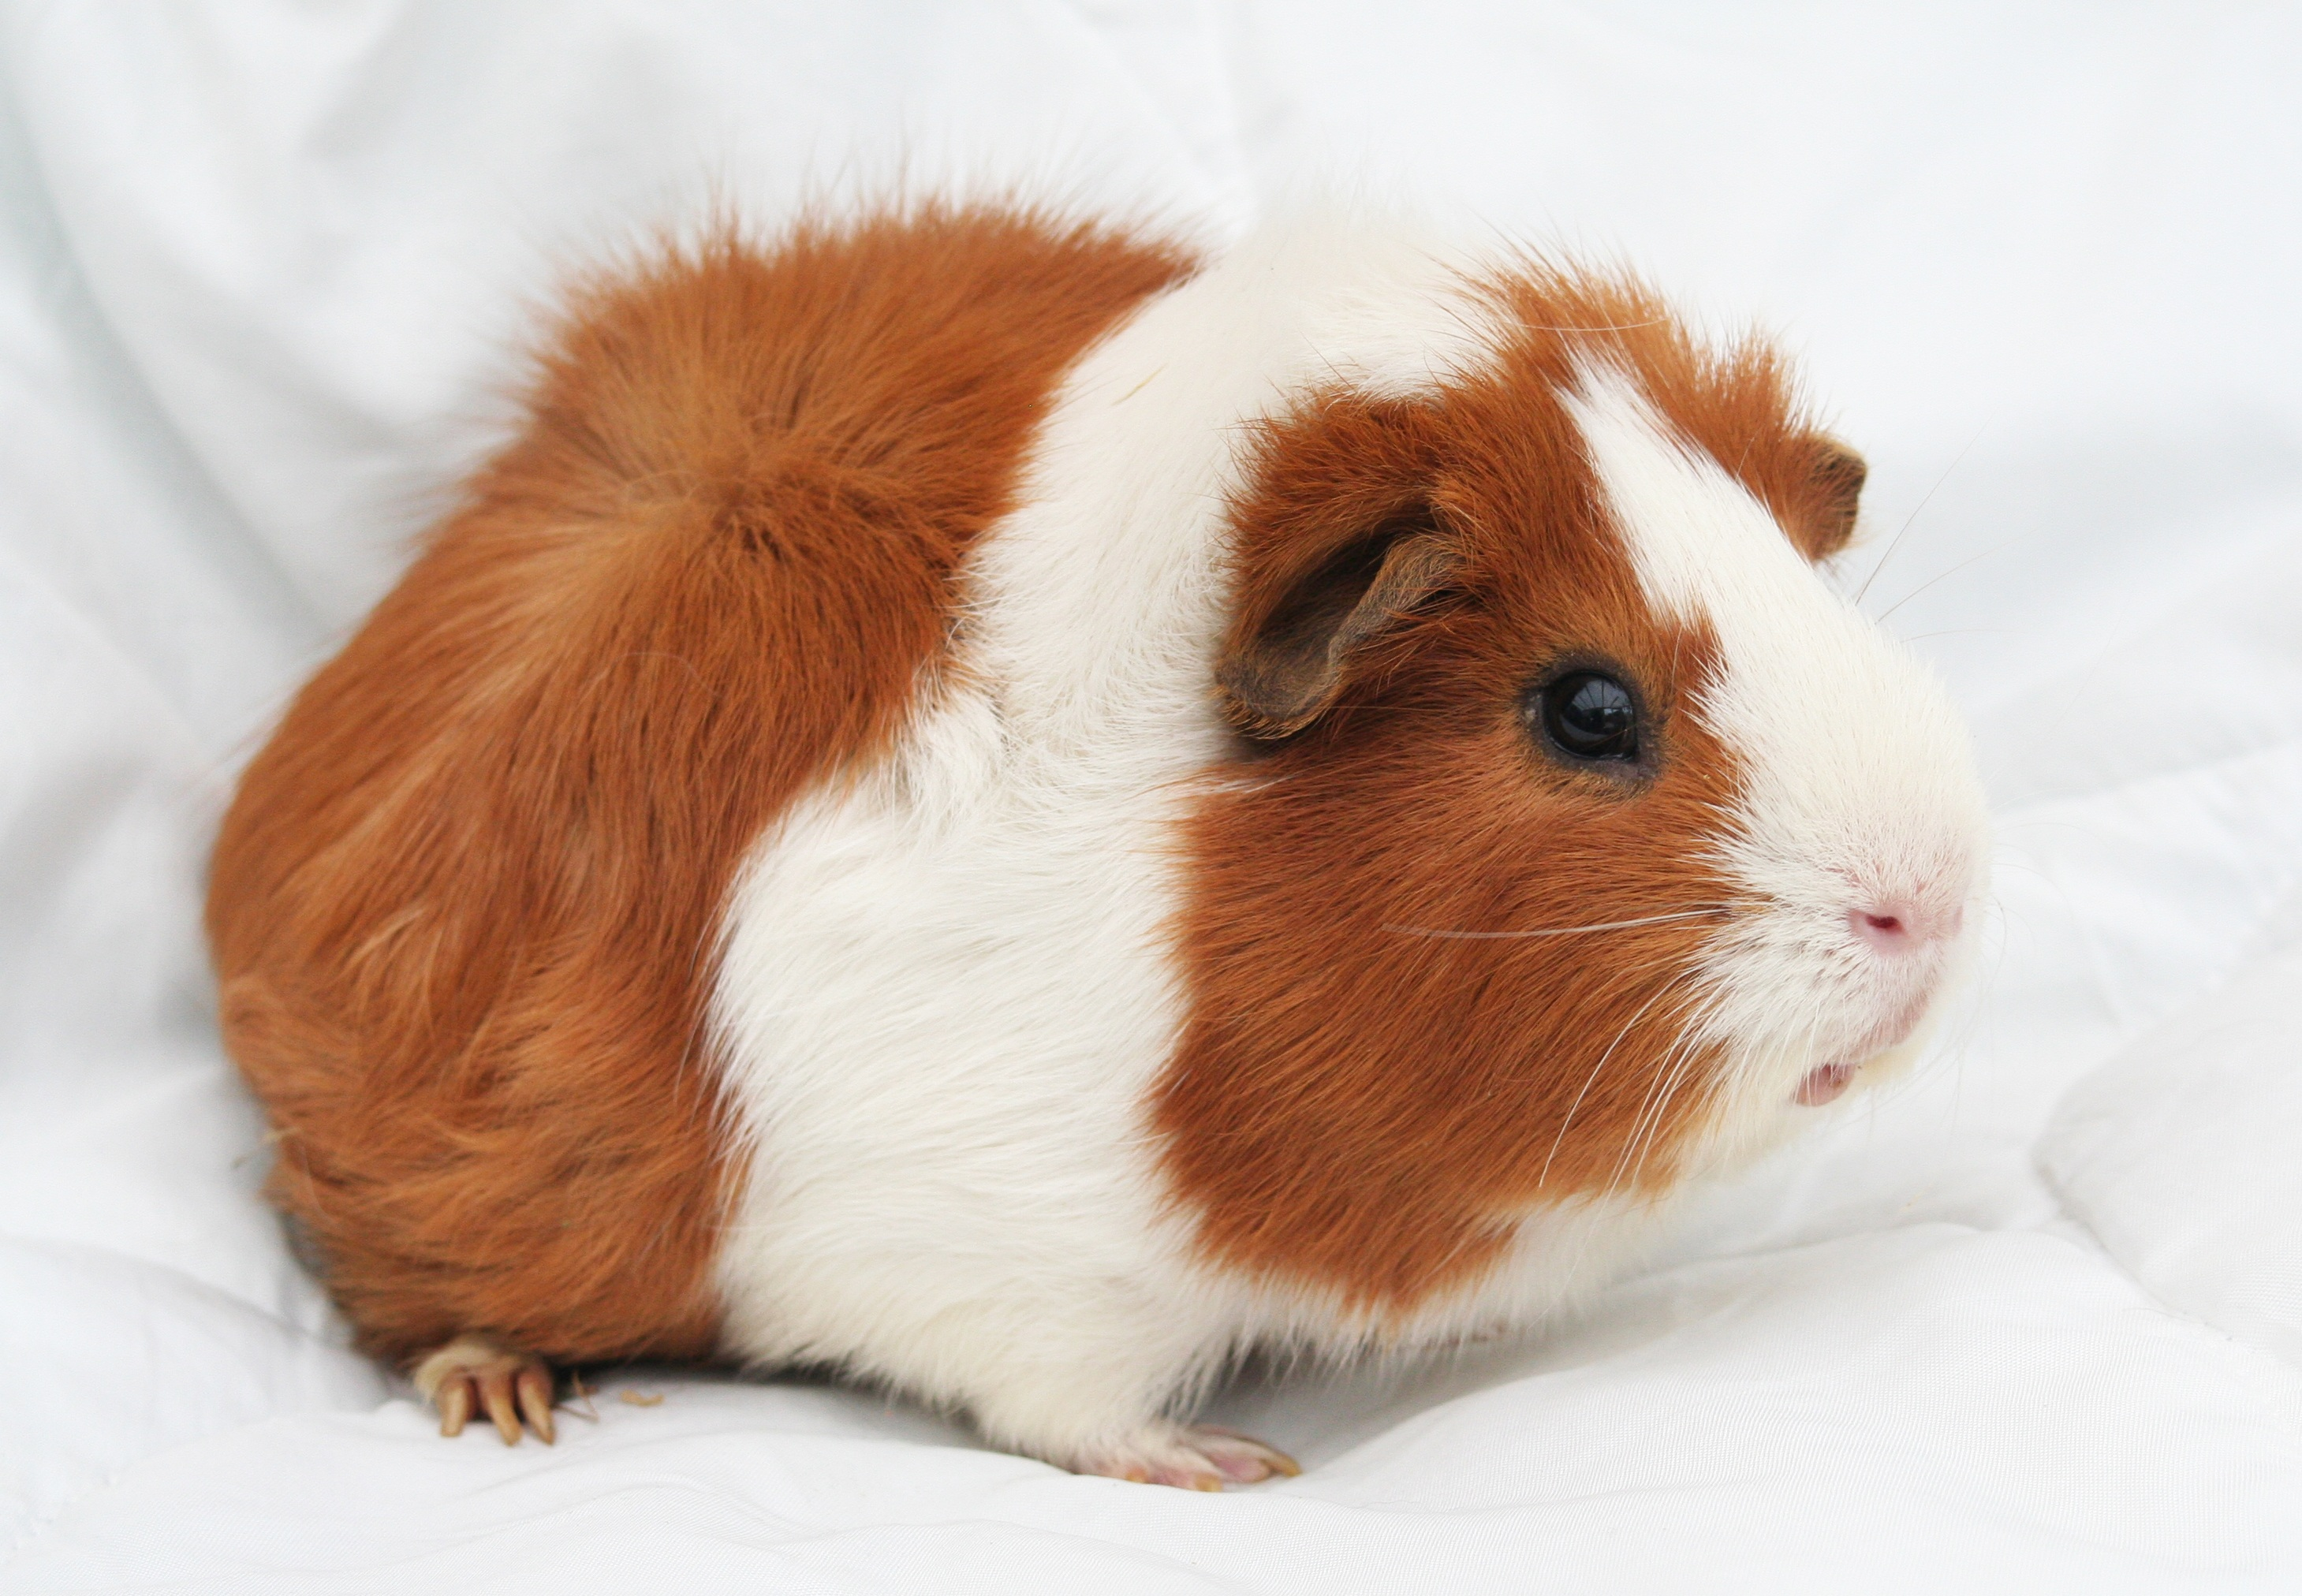 152333 download wallpaper Animals, Guinea Pig, Rodent, Spotted, Spotty screensavers and pictures for free